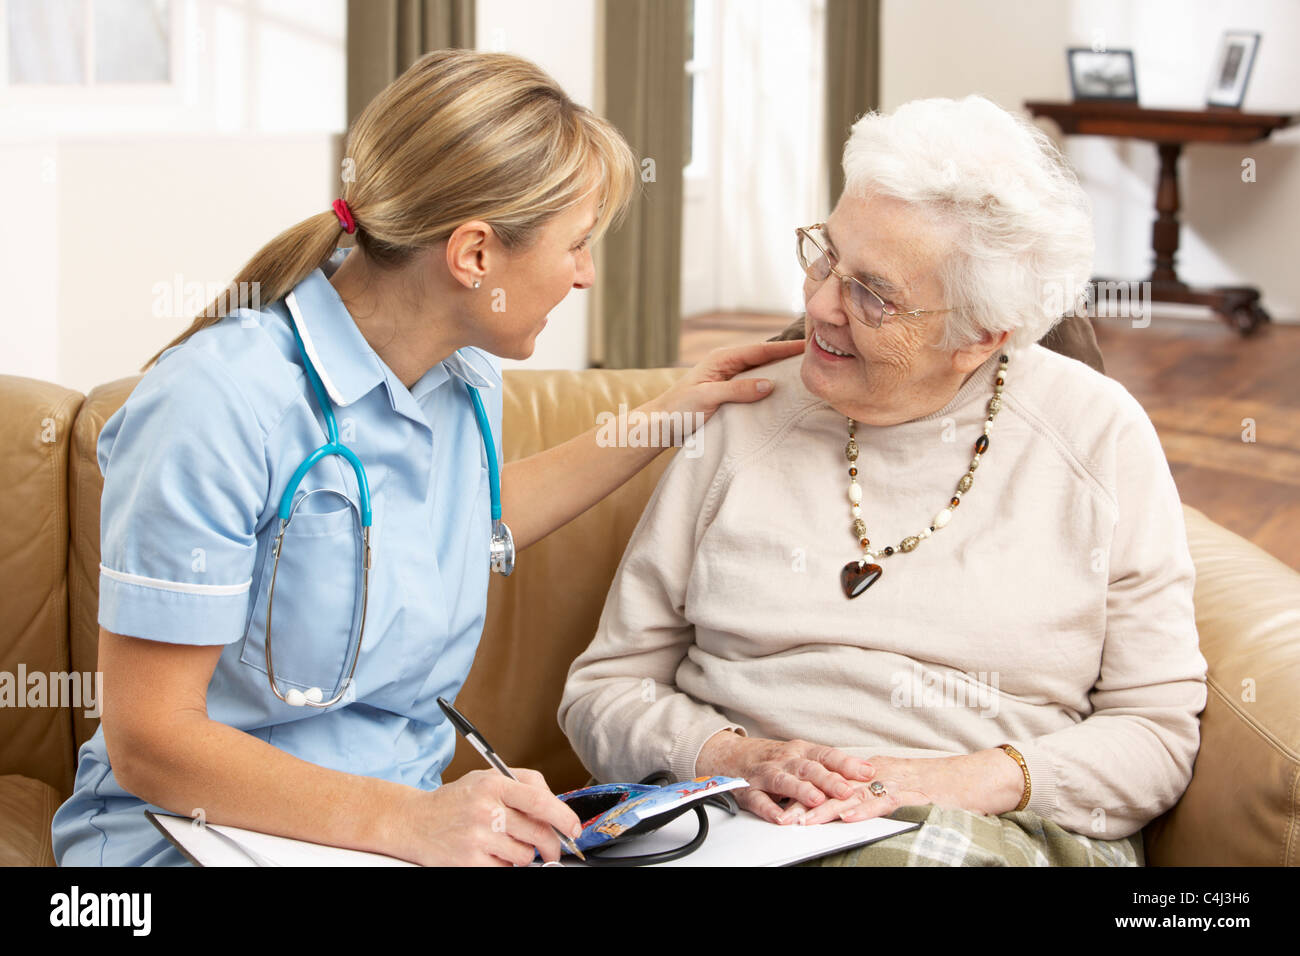 Senior Woman In Discussion With Health Visitor At Home - Stock Image